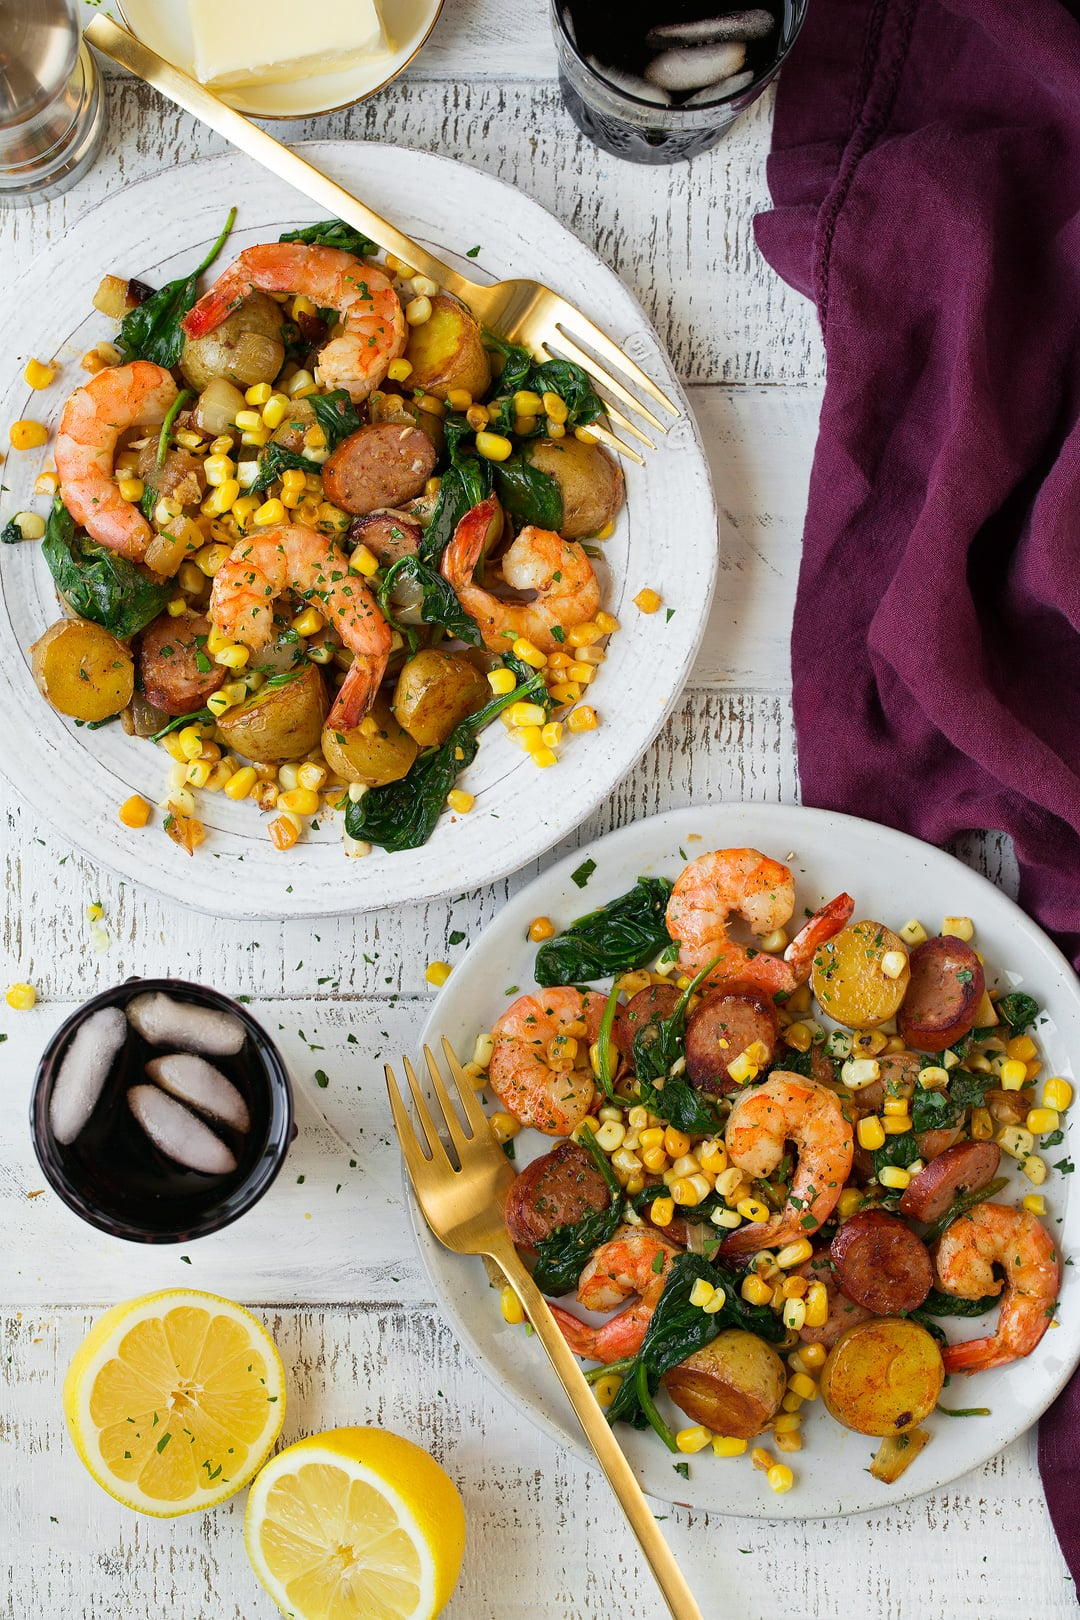 Shrimp boil shown here on two white serving plates set over a white wooden background with a maroon napkin and fresh lemons on the side.